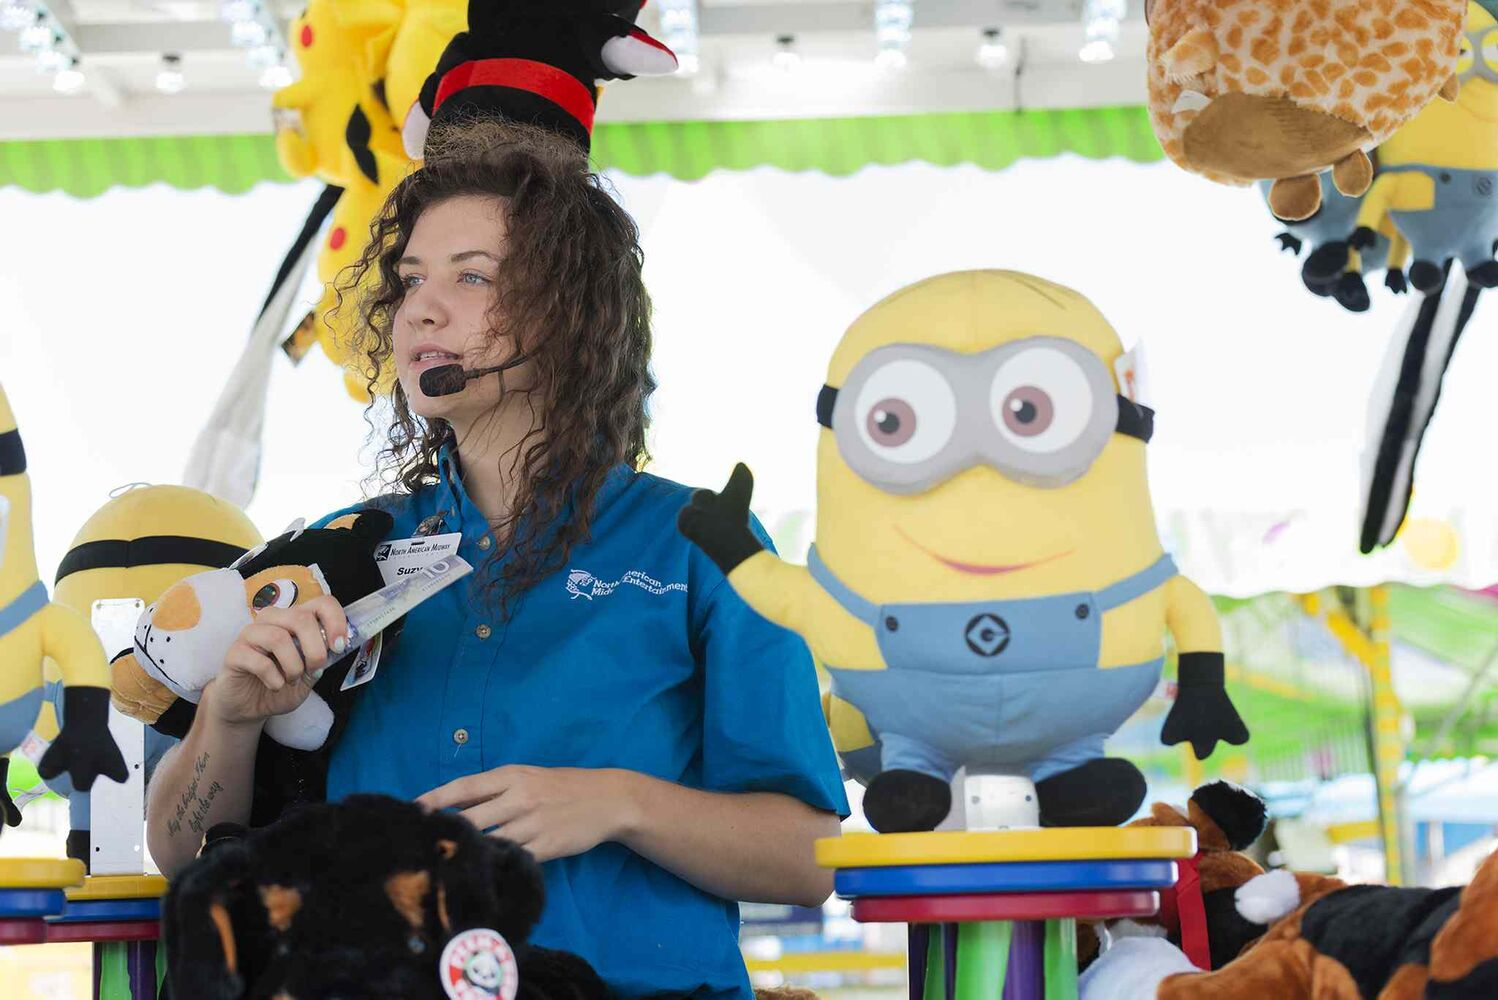 Suzy Willig works the Water Gun Fun game at the Red River Ex.  (Sarah Taylor / Winnipeg Free Press)